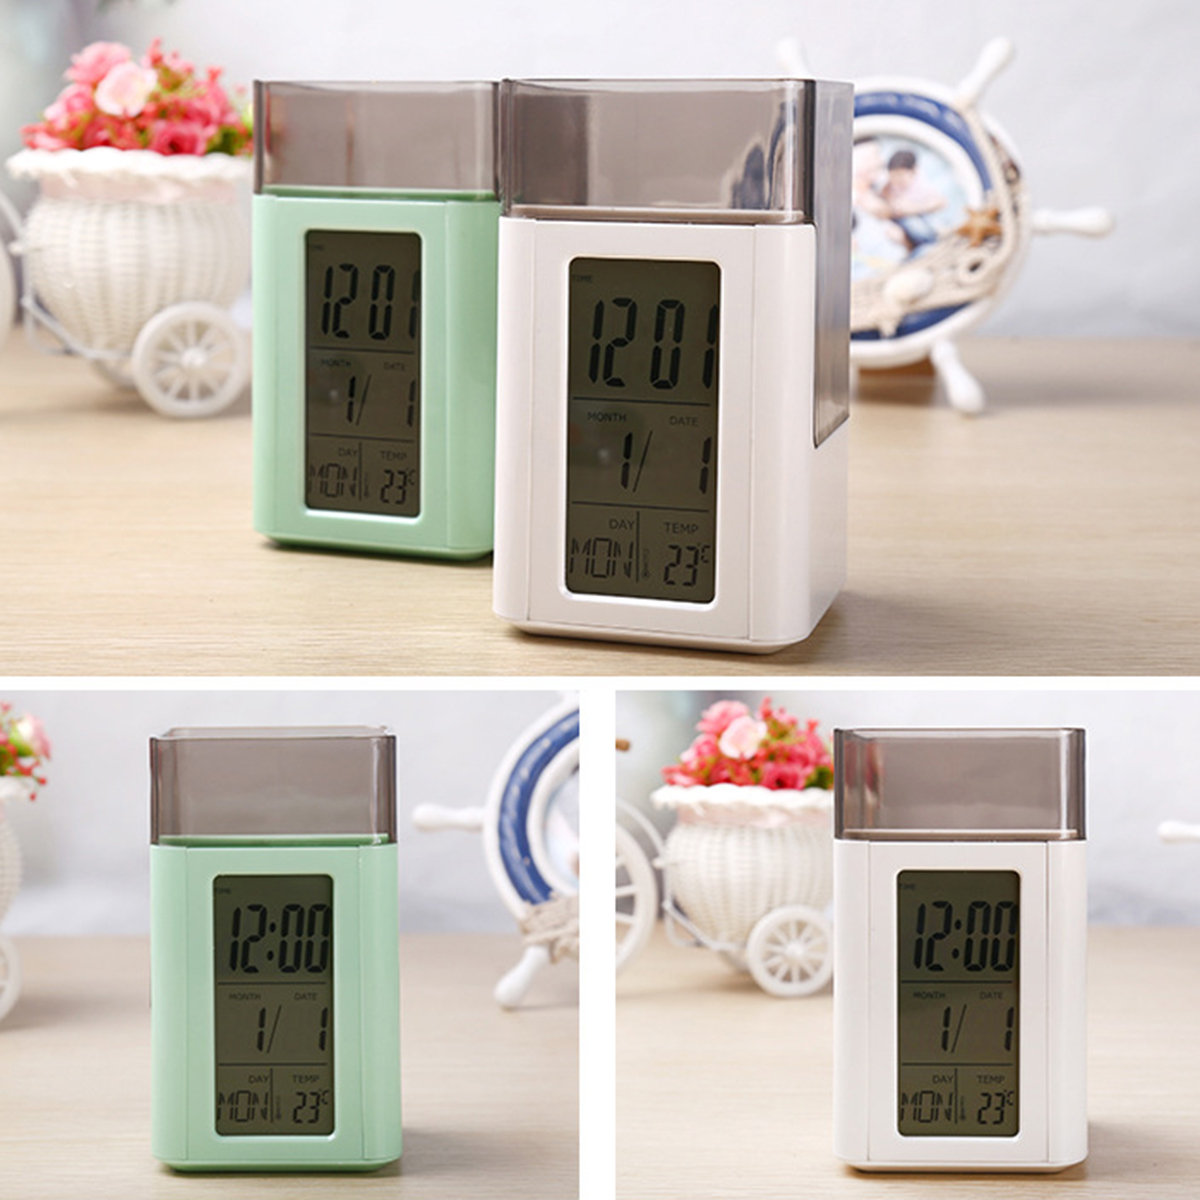 Plastic Multi-functions Digital Desk Pen/Pencil Holder LCD Alarm Clock Thermometer & Calendar Display Home Decor White & Green